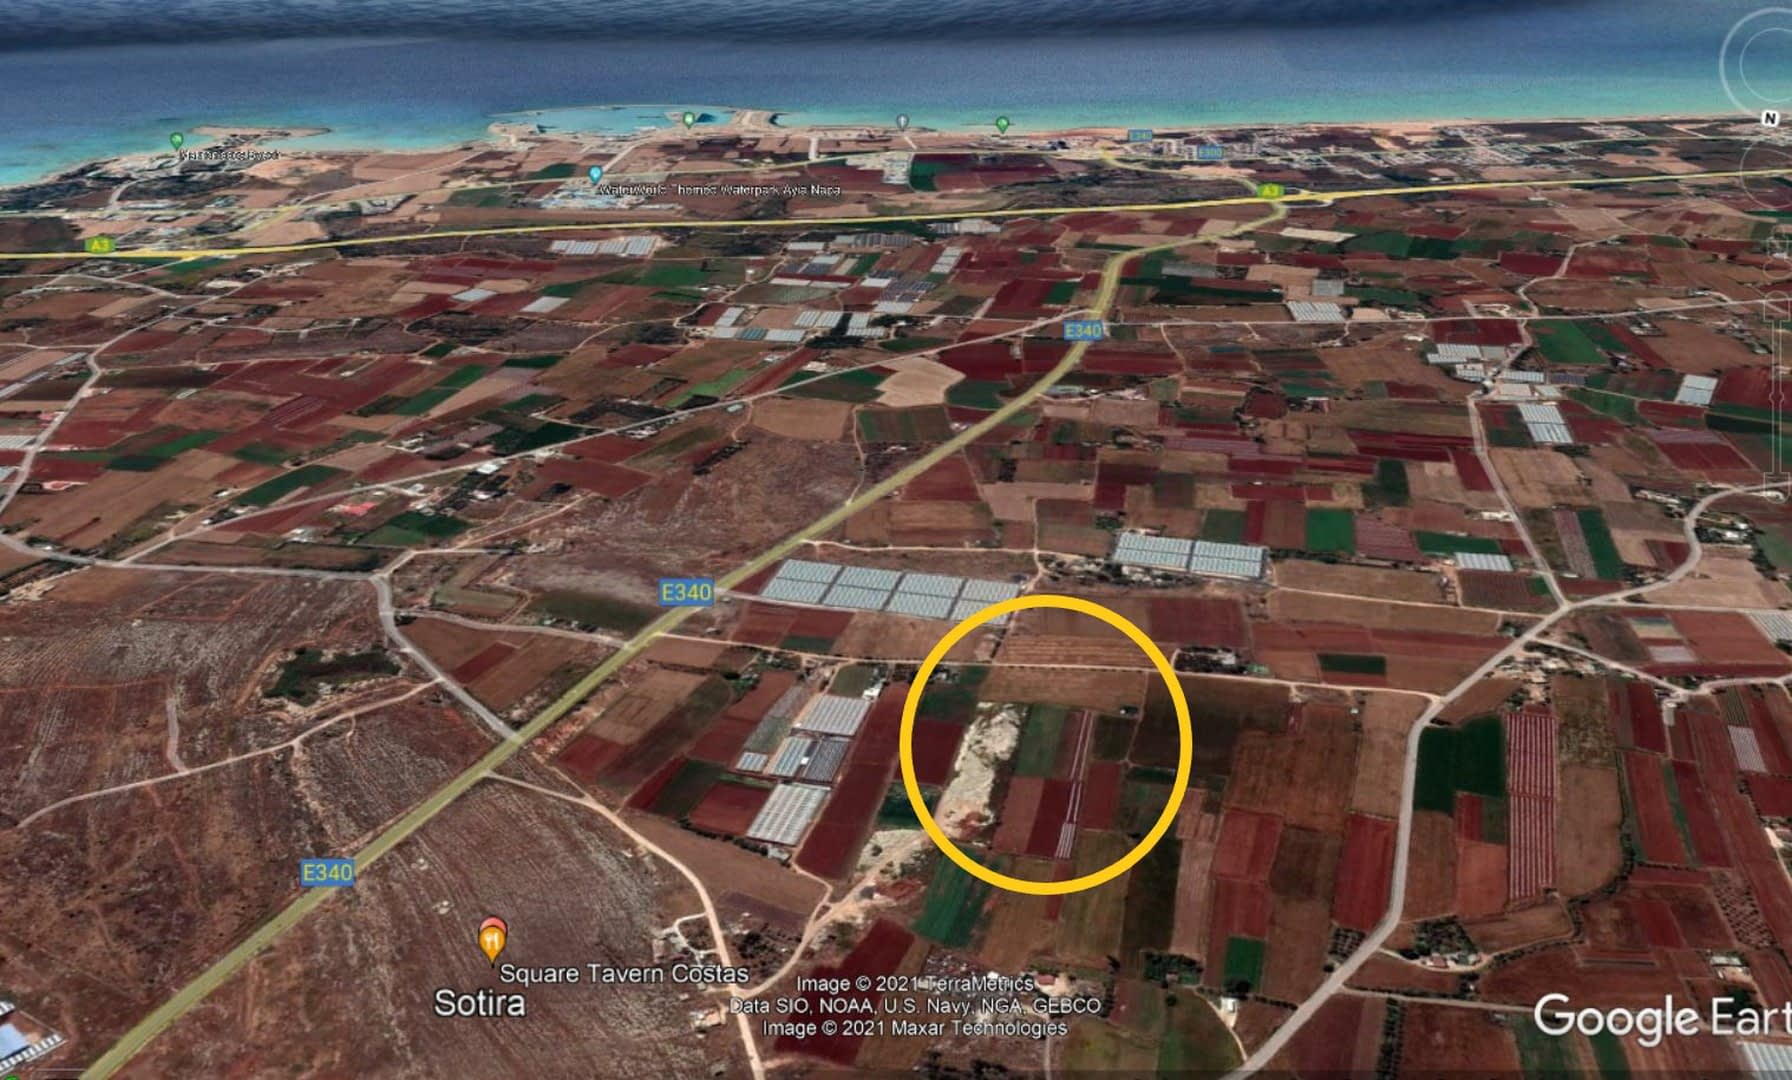 Agriculture Land For Sale In Sotira Area